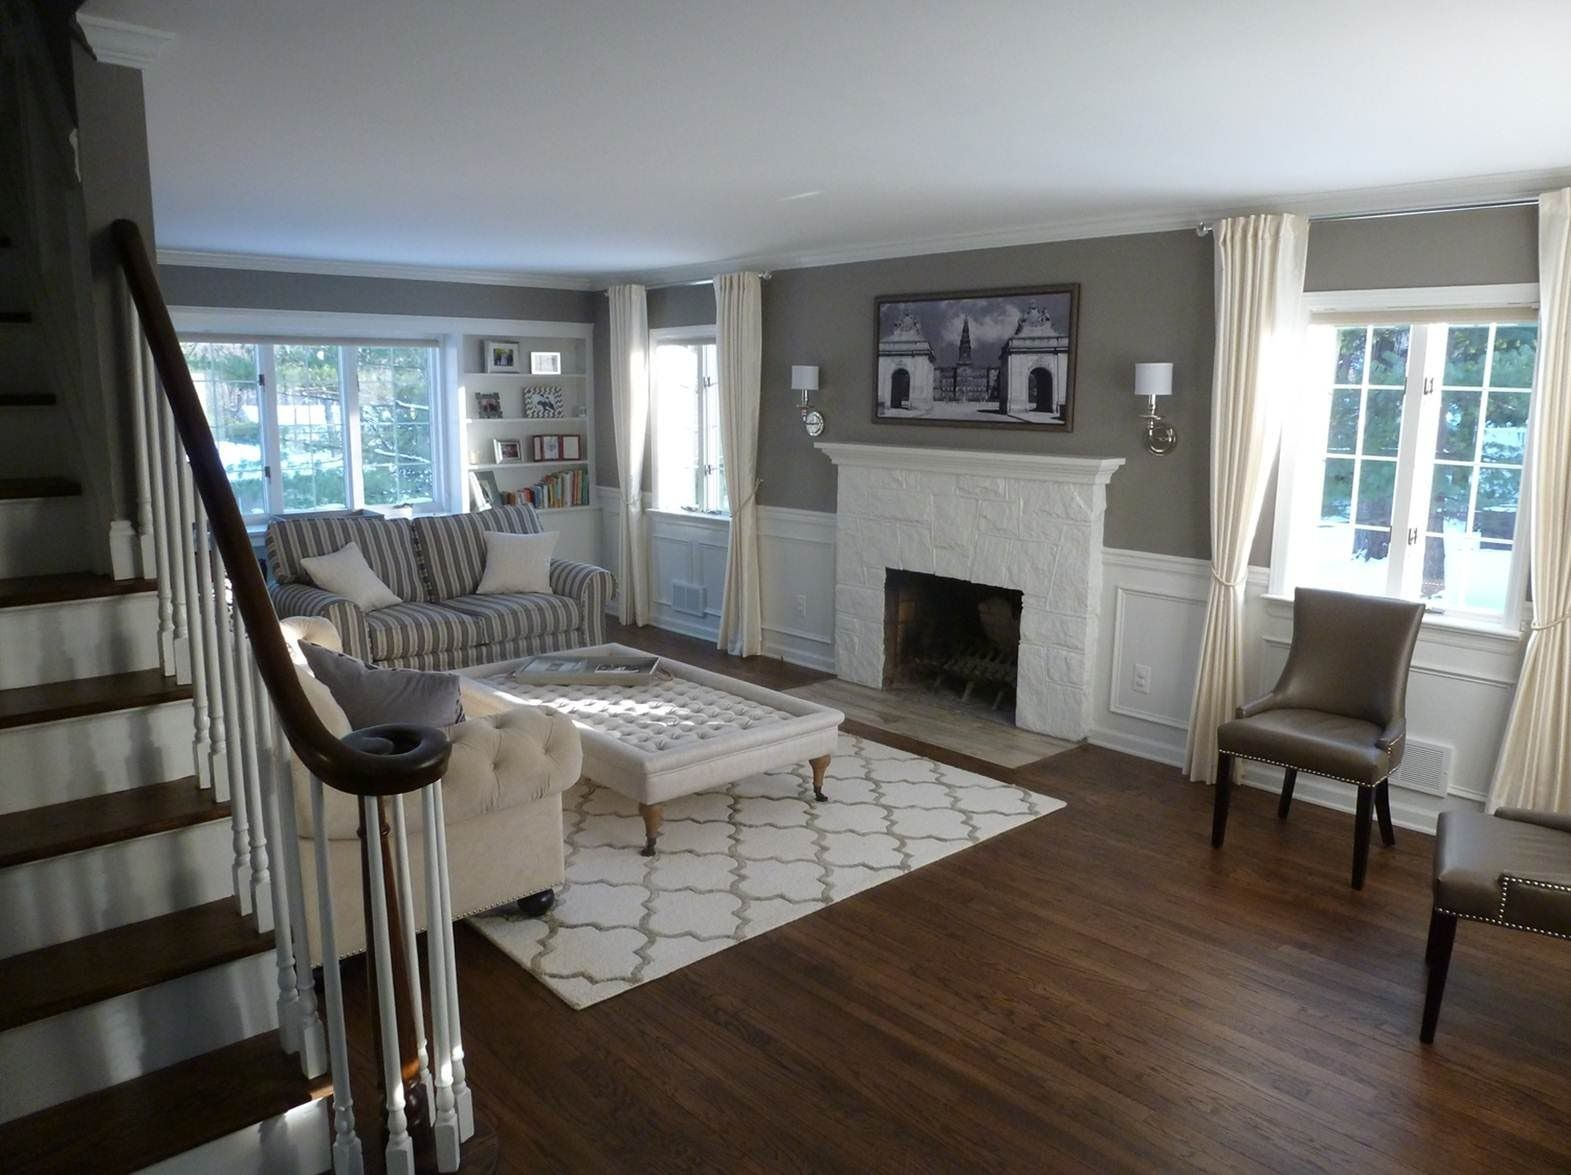 Colonial Remodeling before and after photos from marjun 2013 renovation of 2400 sqft